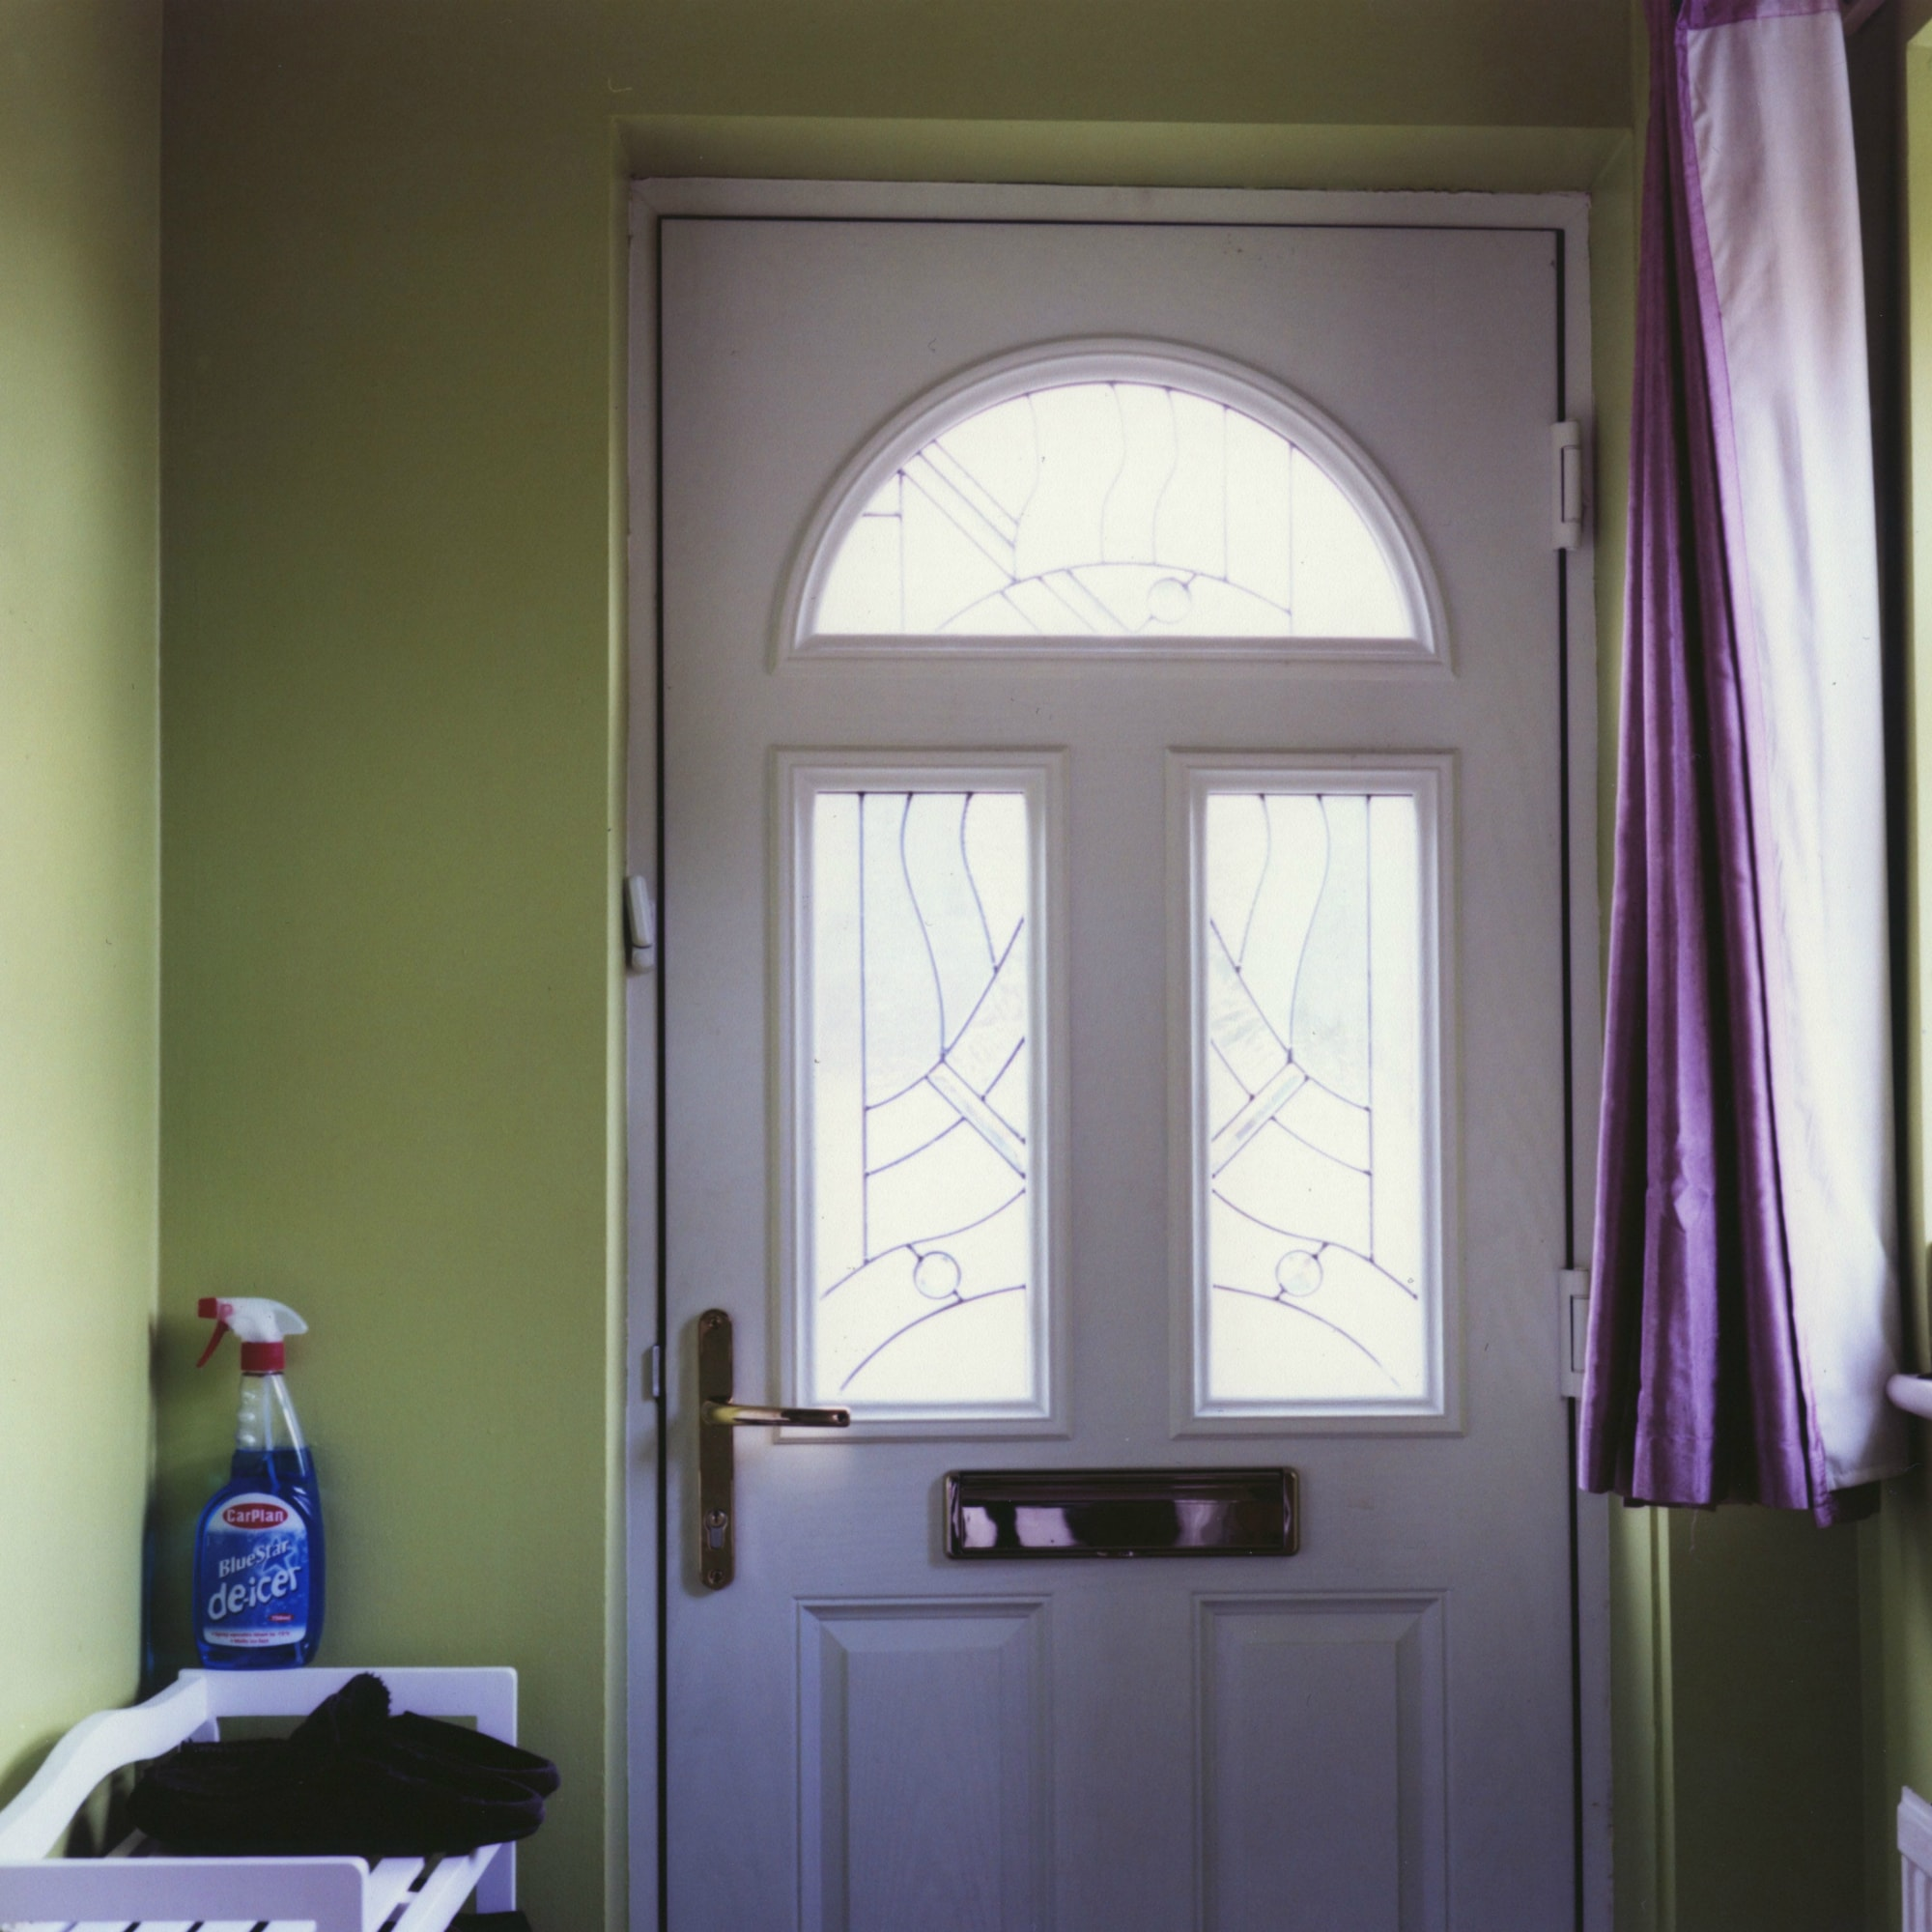 A photo of a front door of a house from the inside with purple curtains and household items nearby